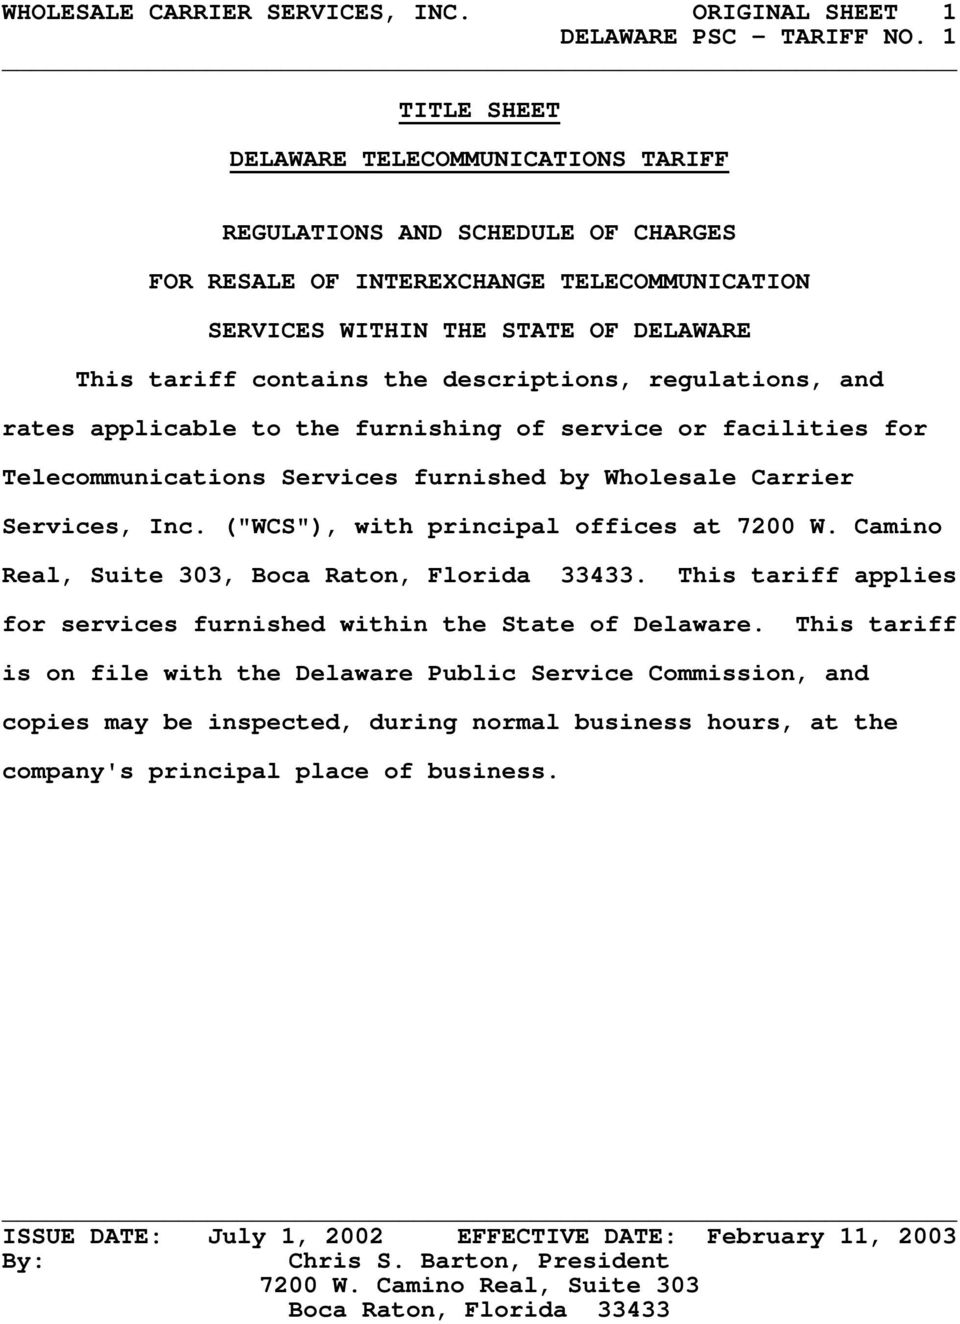 DELAWARE This tariff contains the descriptions, regulations, and rates applicable to the furnishing of service or facilities for Telecommunications Services furnished by Wholesale